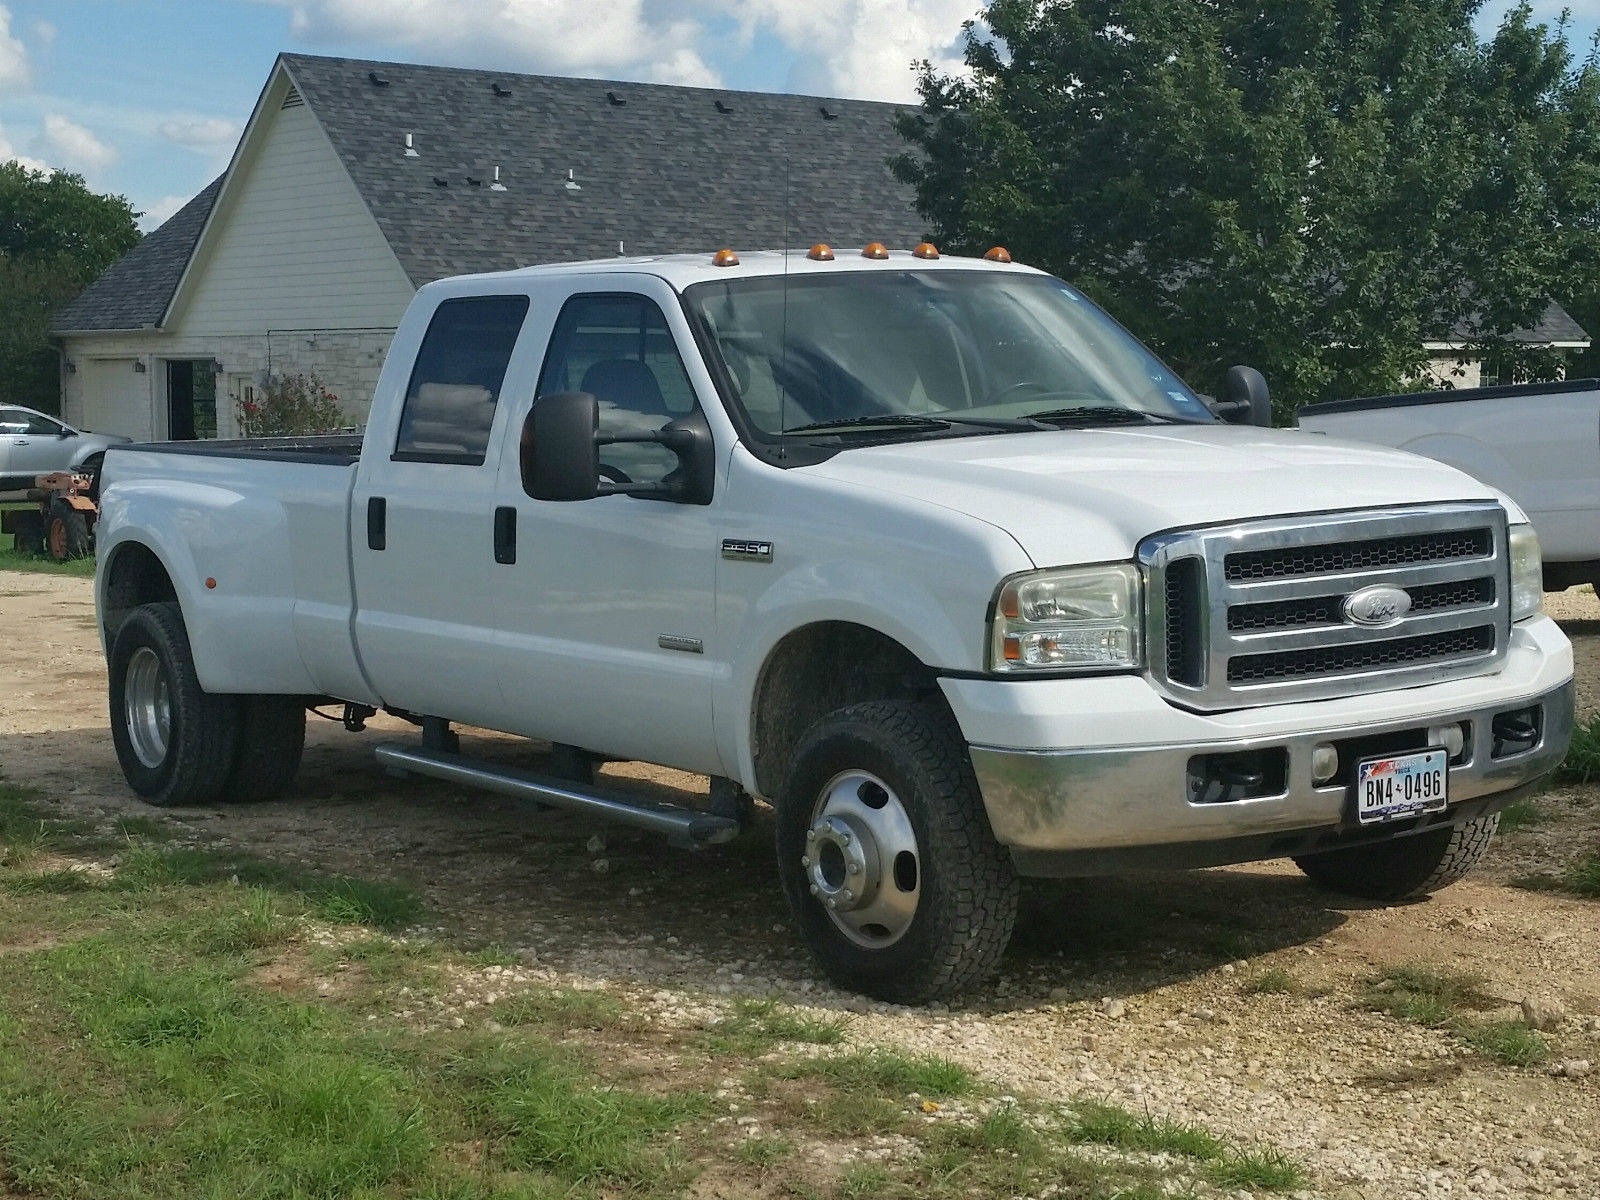 2005 ford f 350 super duty drw lariat crew cab pickup for sale. Black Bedroom Furniture Sets. Home Design Ideas